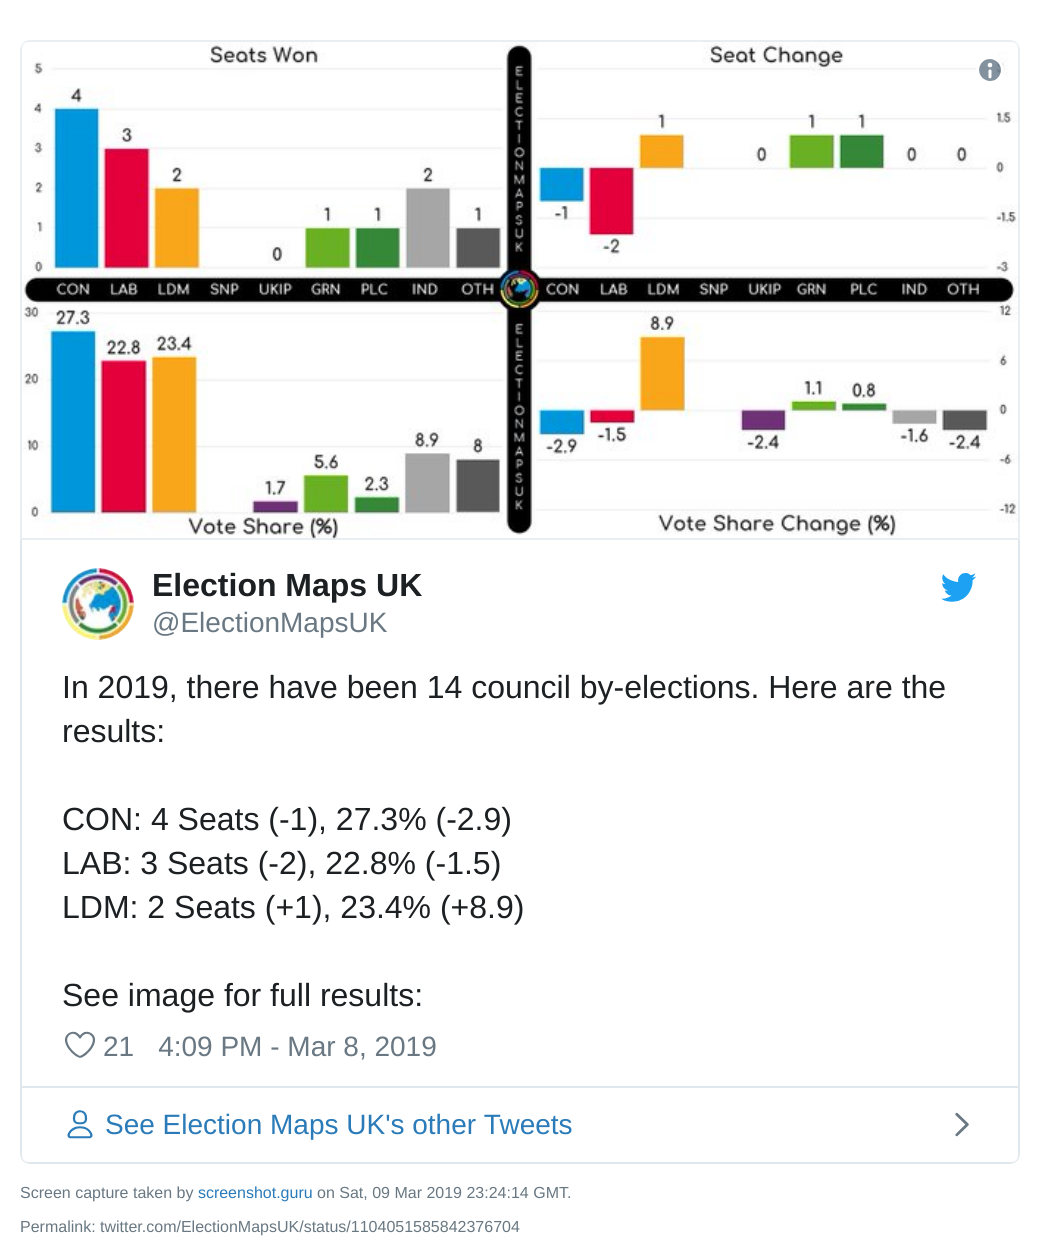 Election Maps UK graph of council by-election results so far in 2019